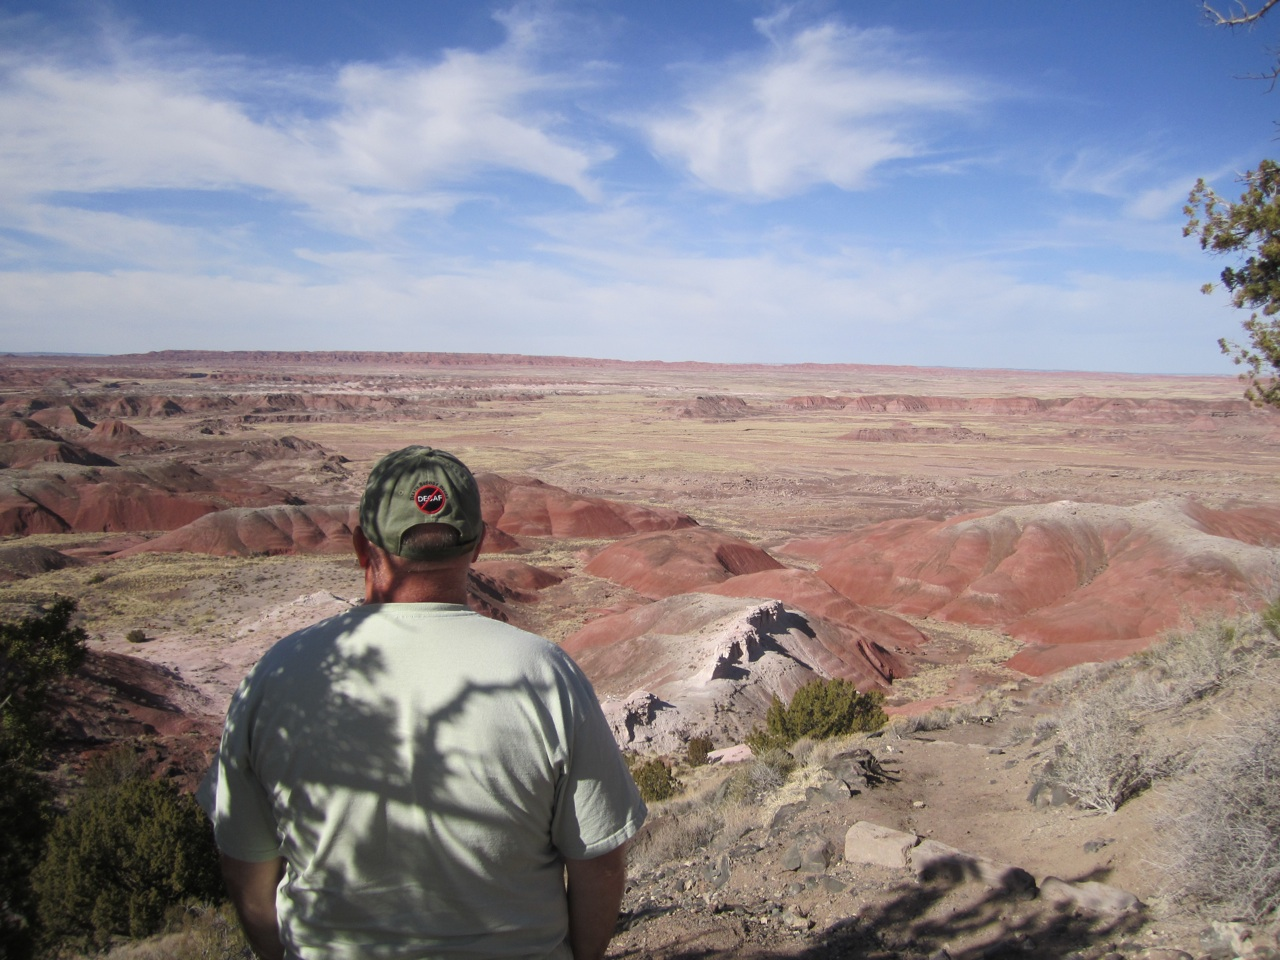 David Enjoying The View Of The Painted Desert